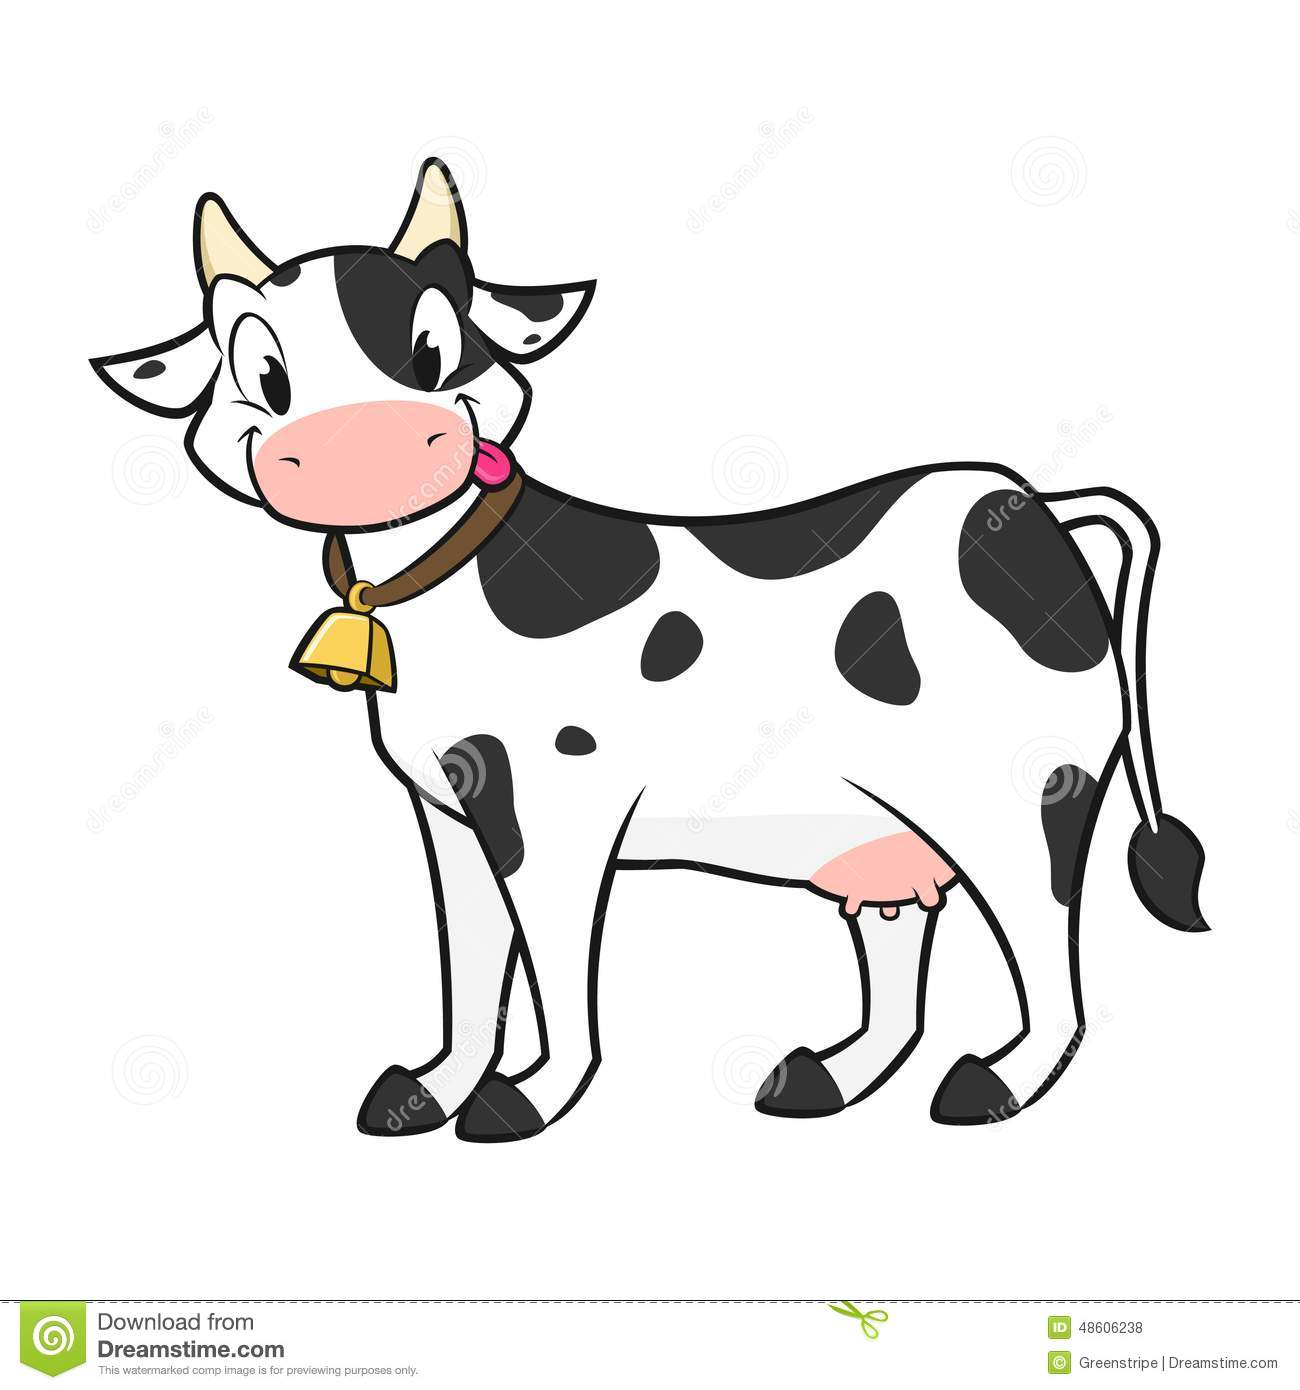 Vache dessin anim illustration de vecteur illustration - Vache en dessin ...